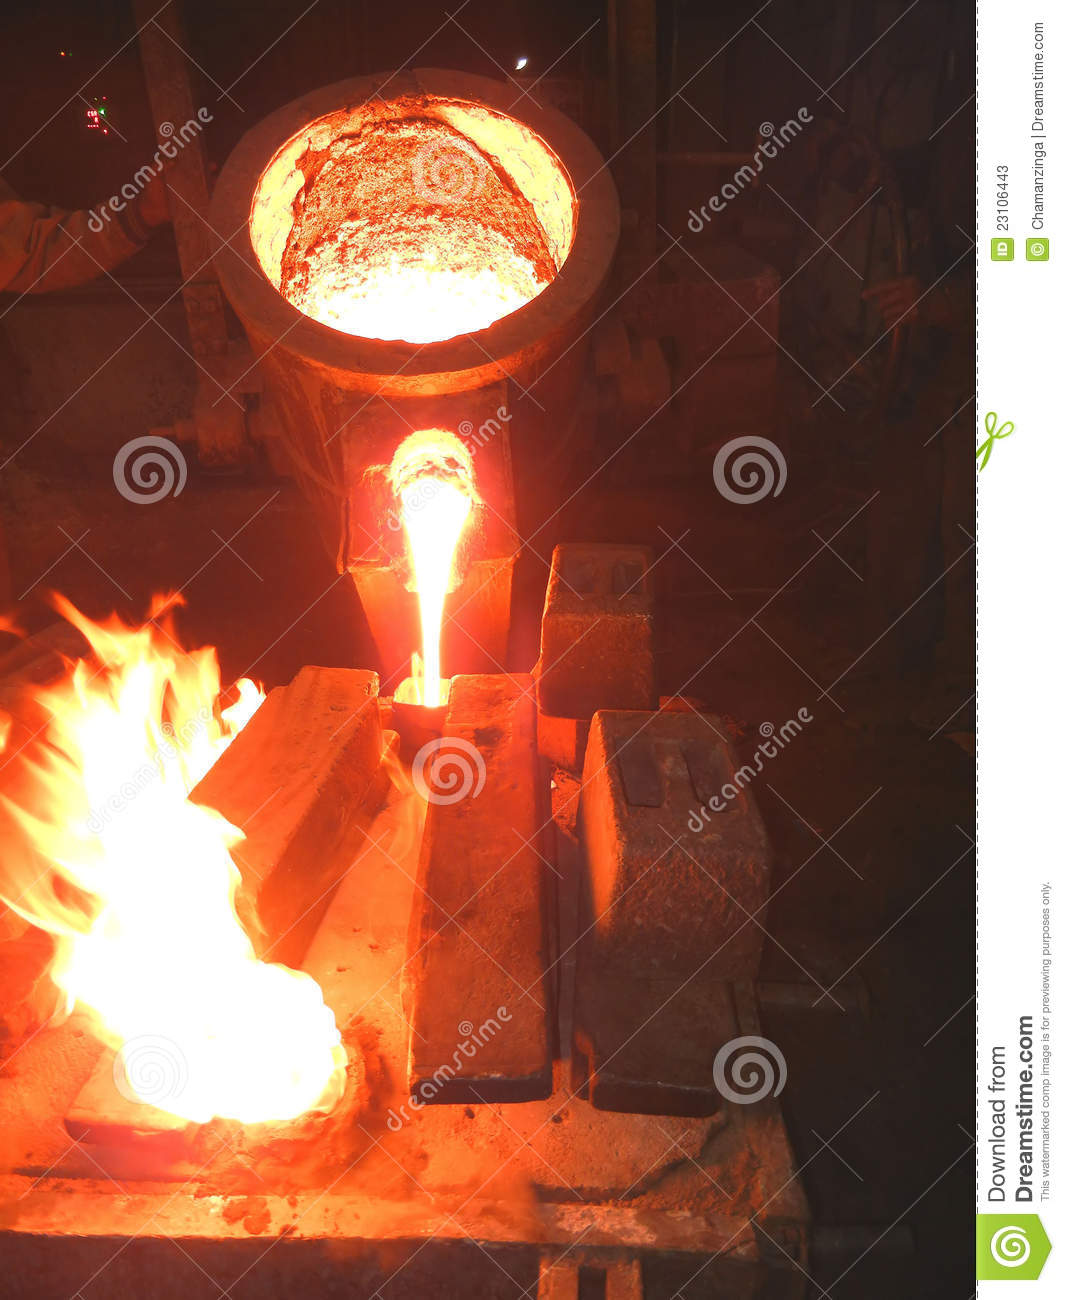 Cast In Steel : Pouring of molten steel cast iron stock image